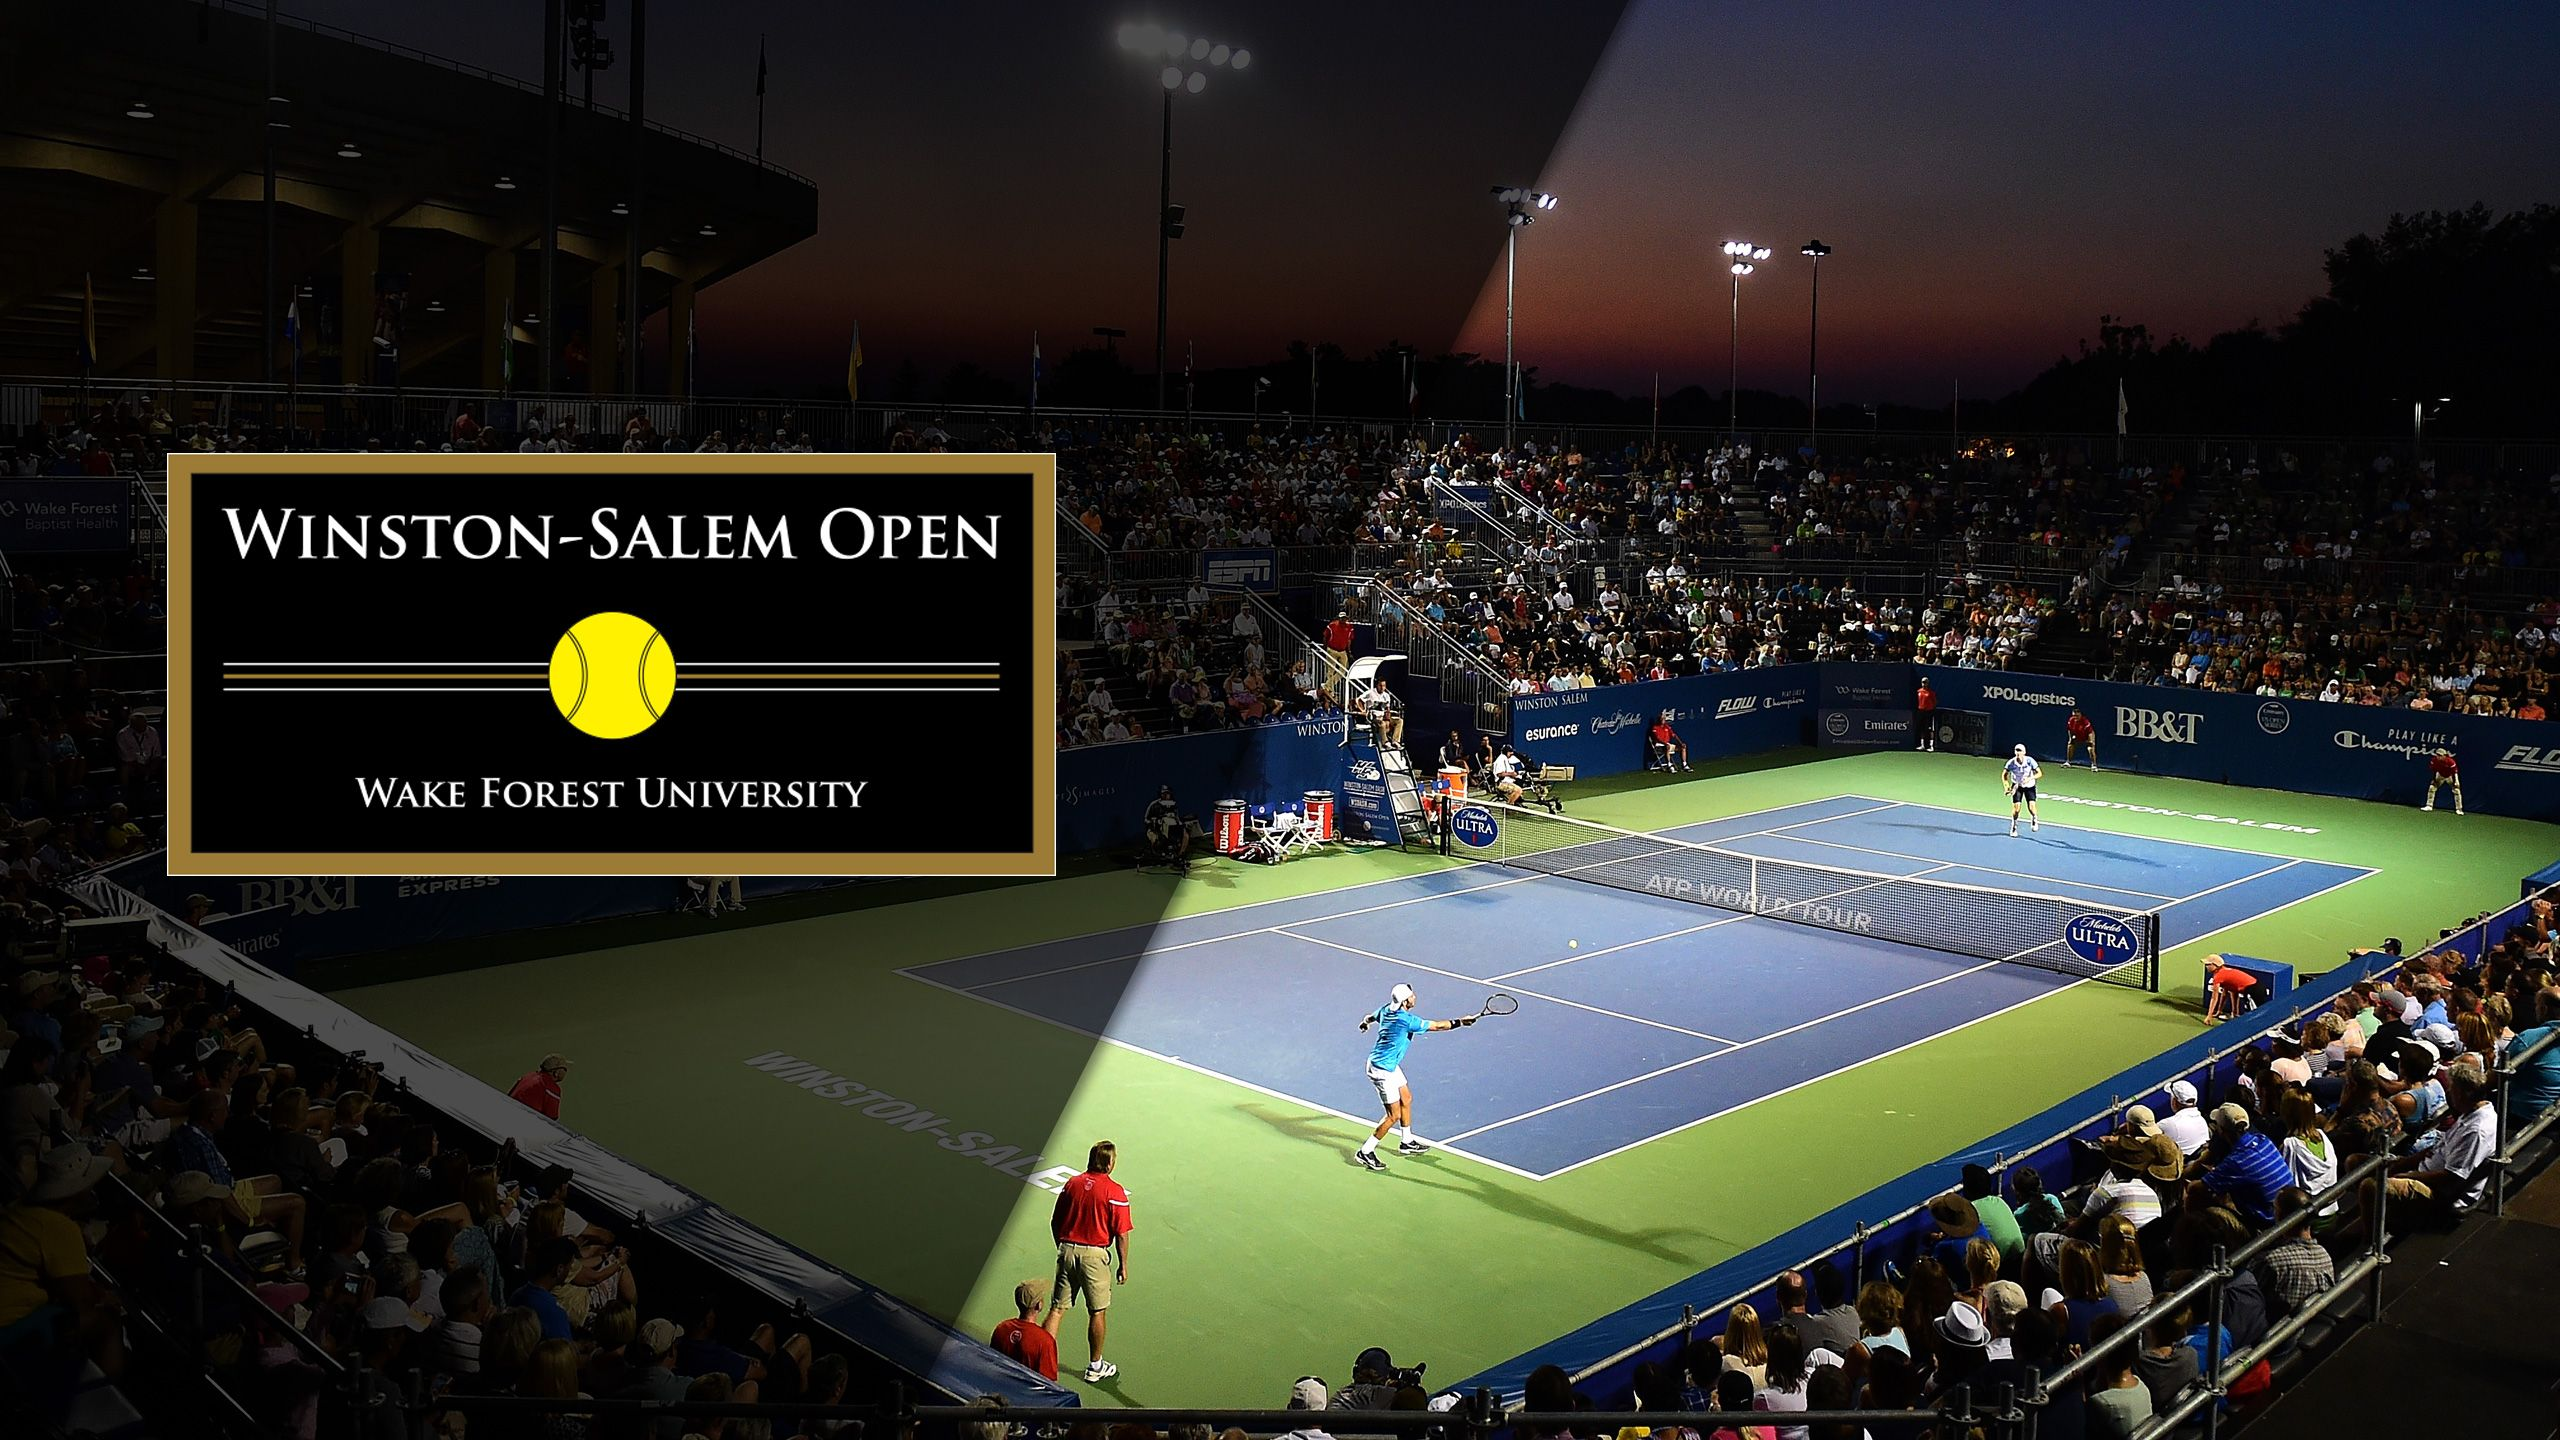 2017 US Open Series - Winston-Salem Open (Third Round)